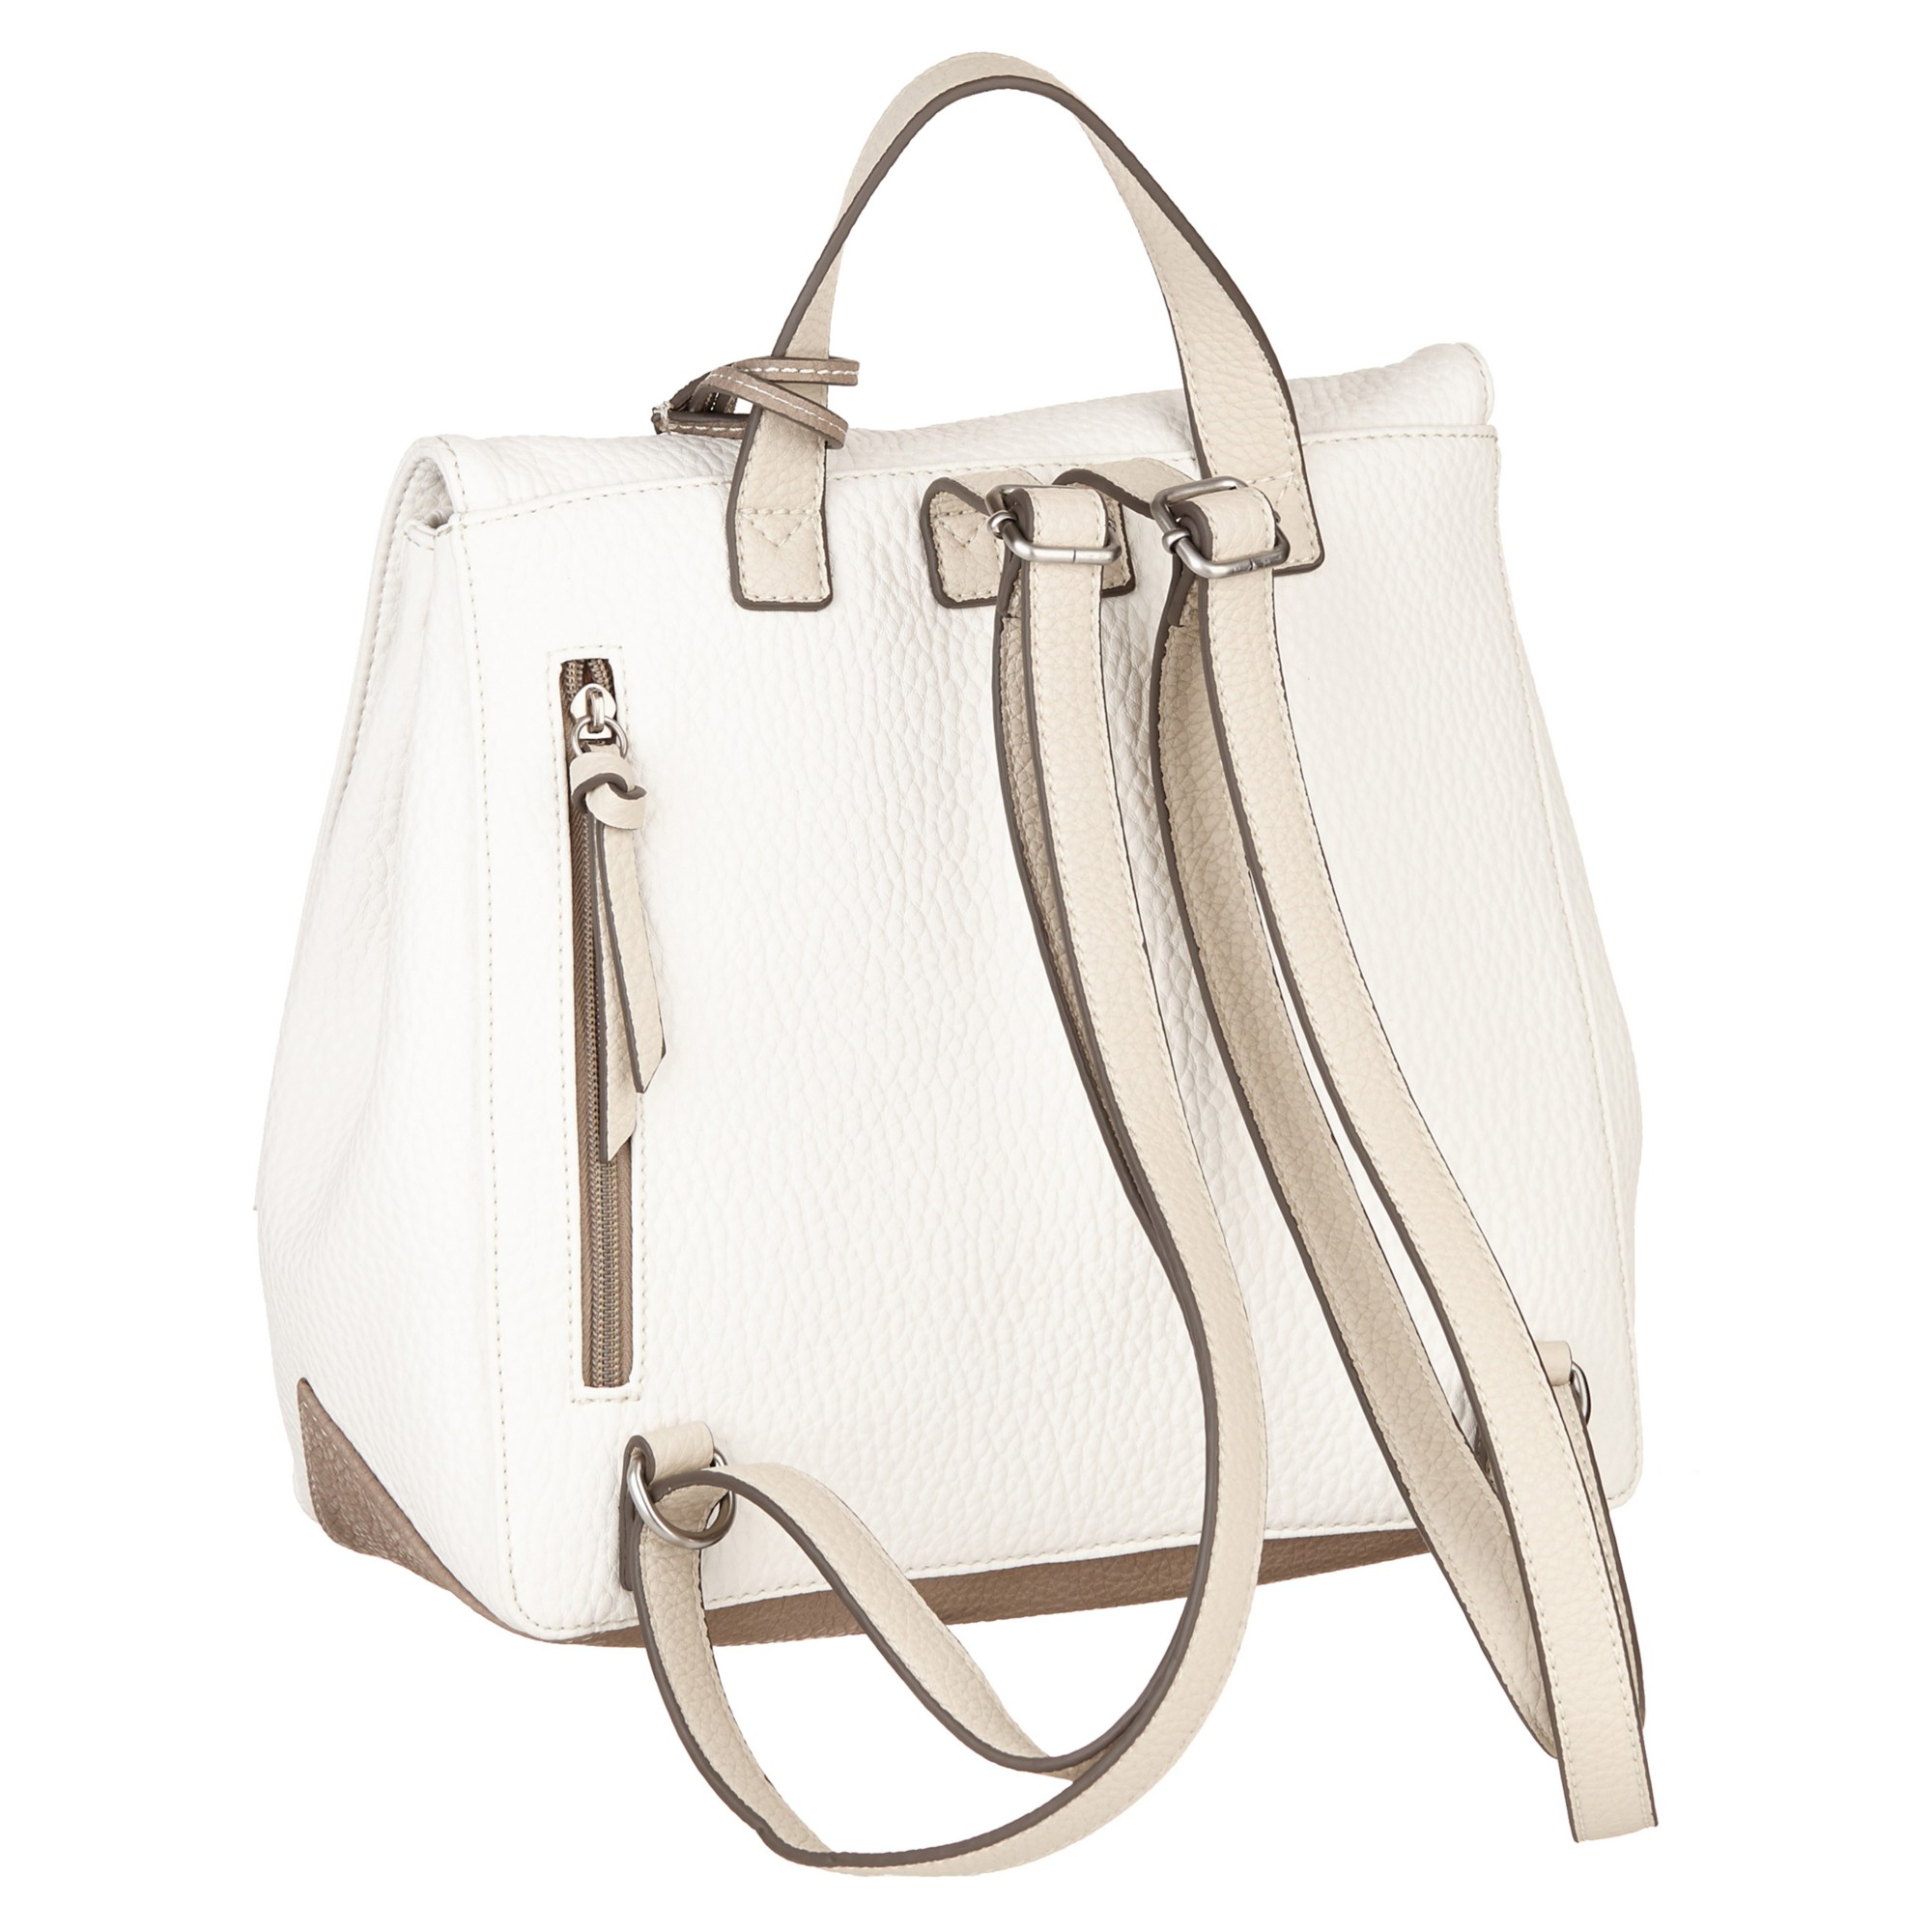 Fiorelli Petra Backpack in White - Lyst